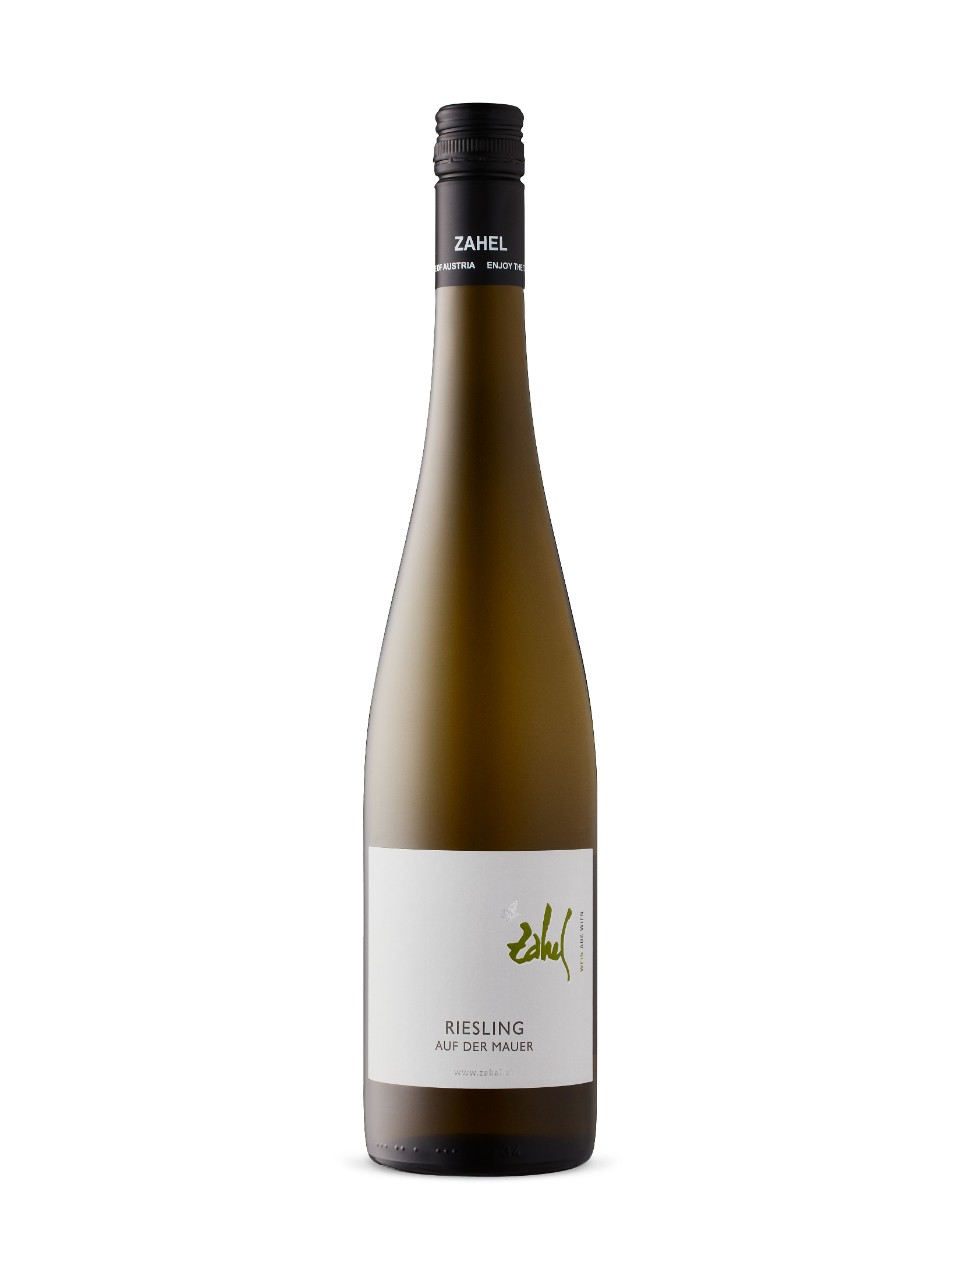 Image for Zahel Riesling auf der Mauer 2016 from LCBO